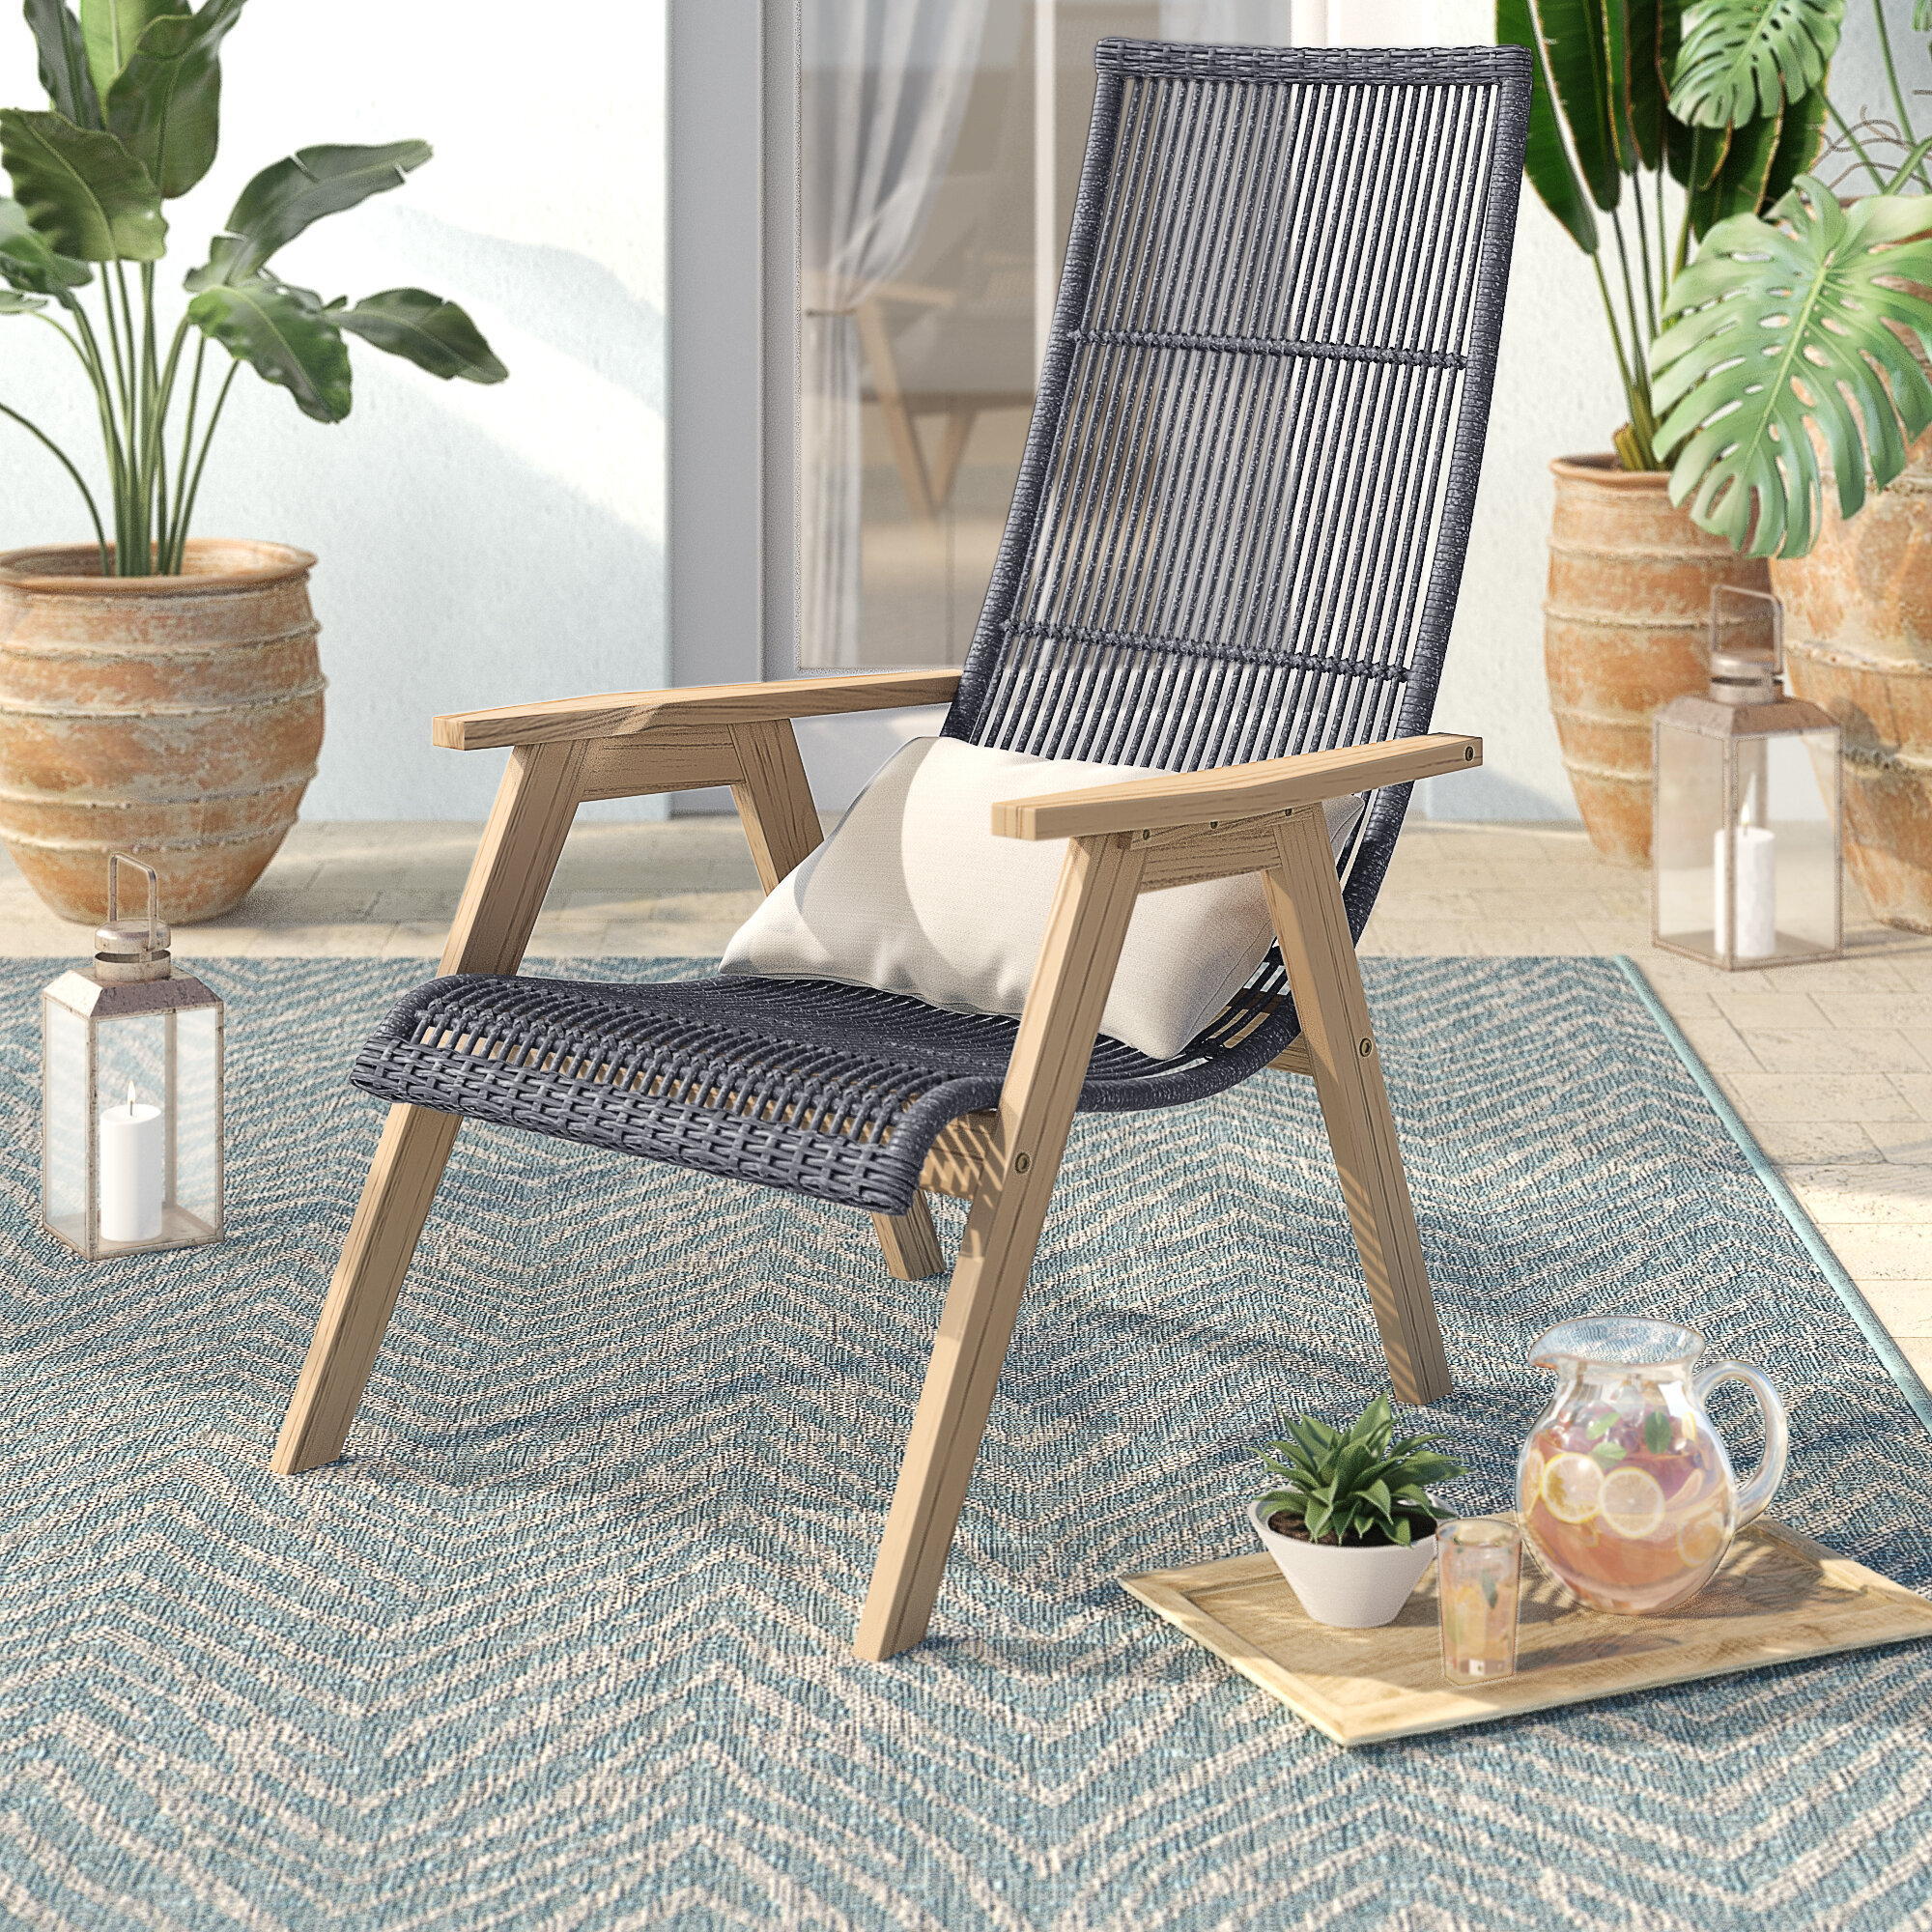 Birch Lane Doraville Teak Patio Chair With Cushions Reviews Wayfair